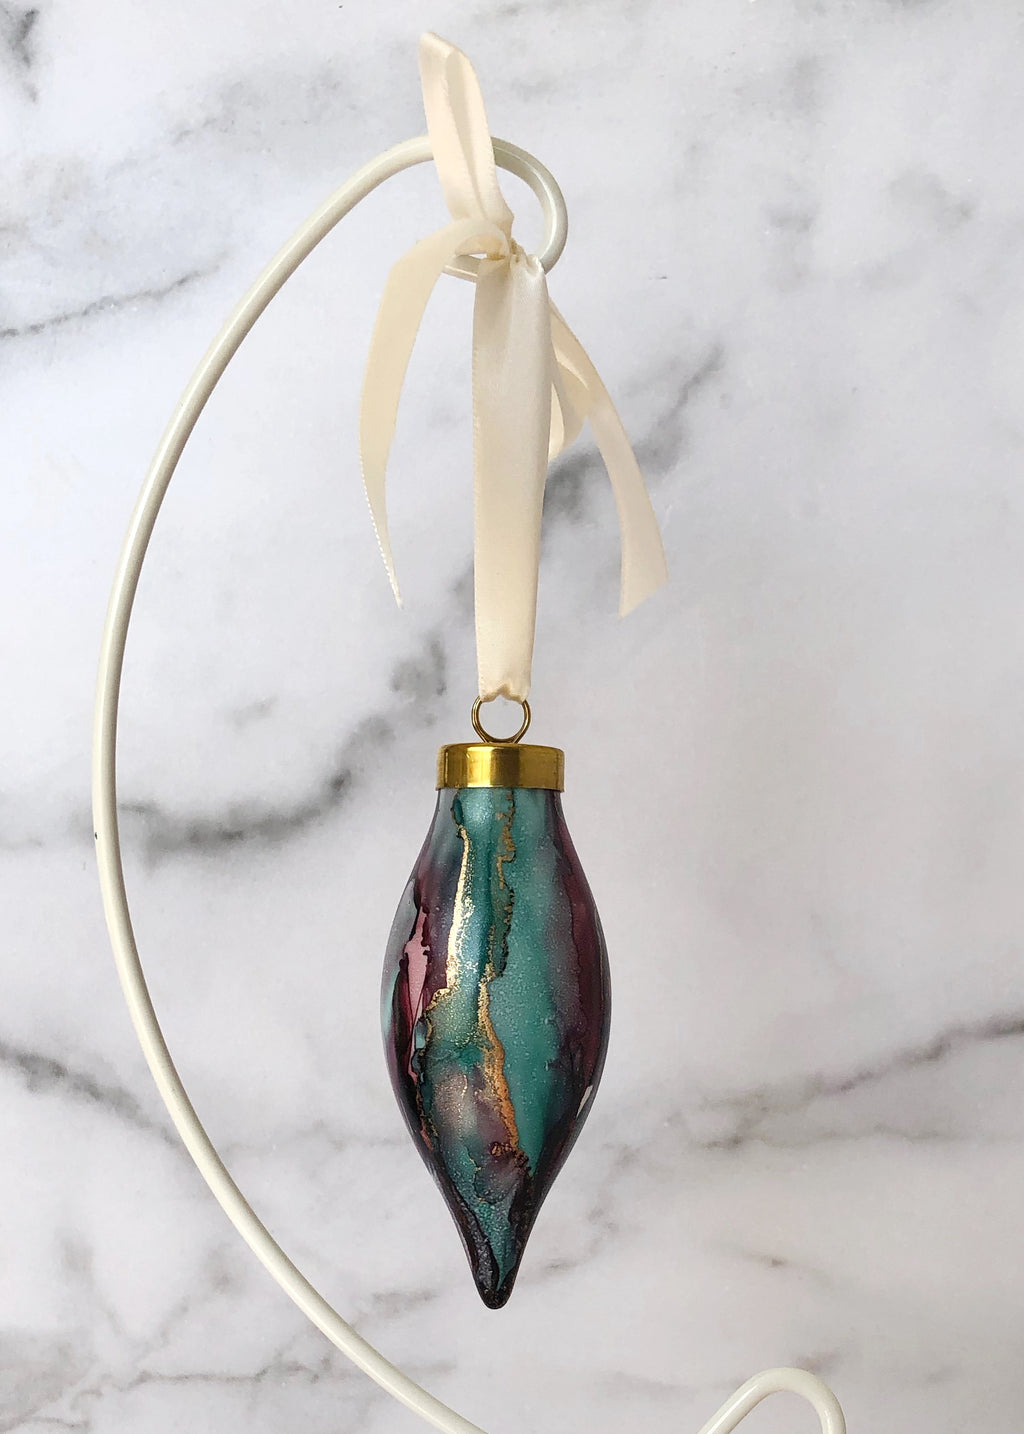 Teal and Wine Handpainted Ornament - Narrow Teardrop